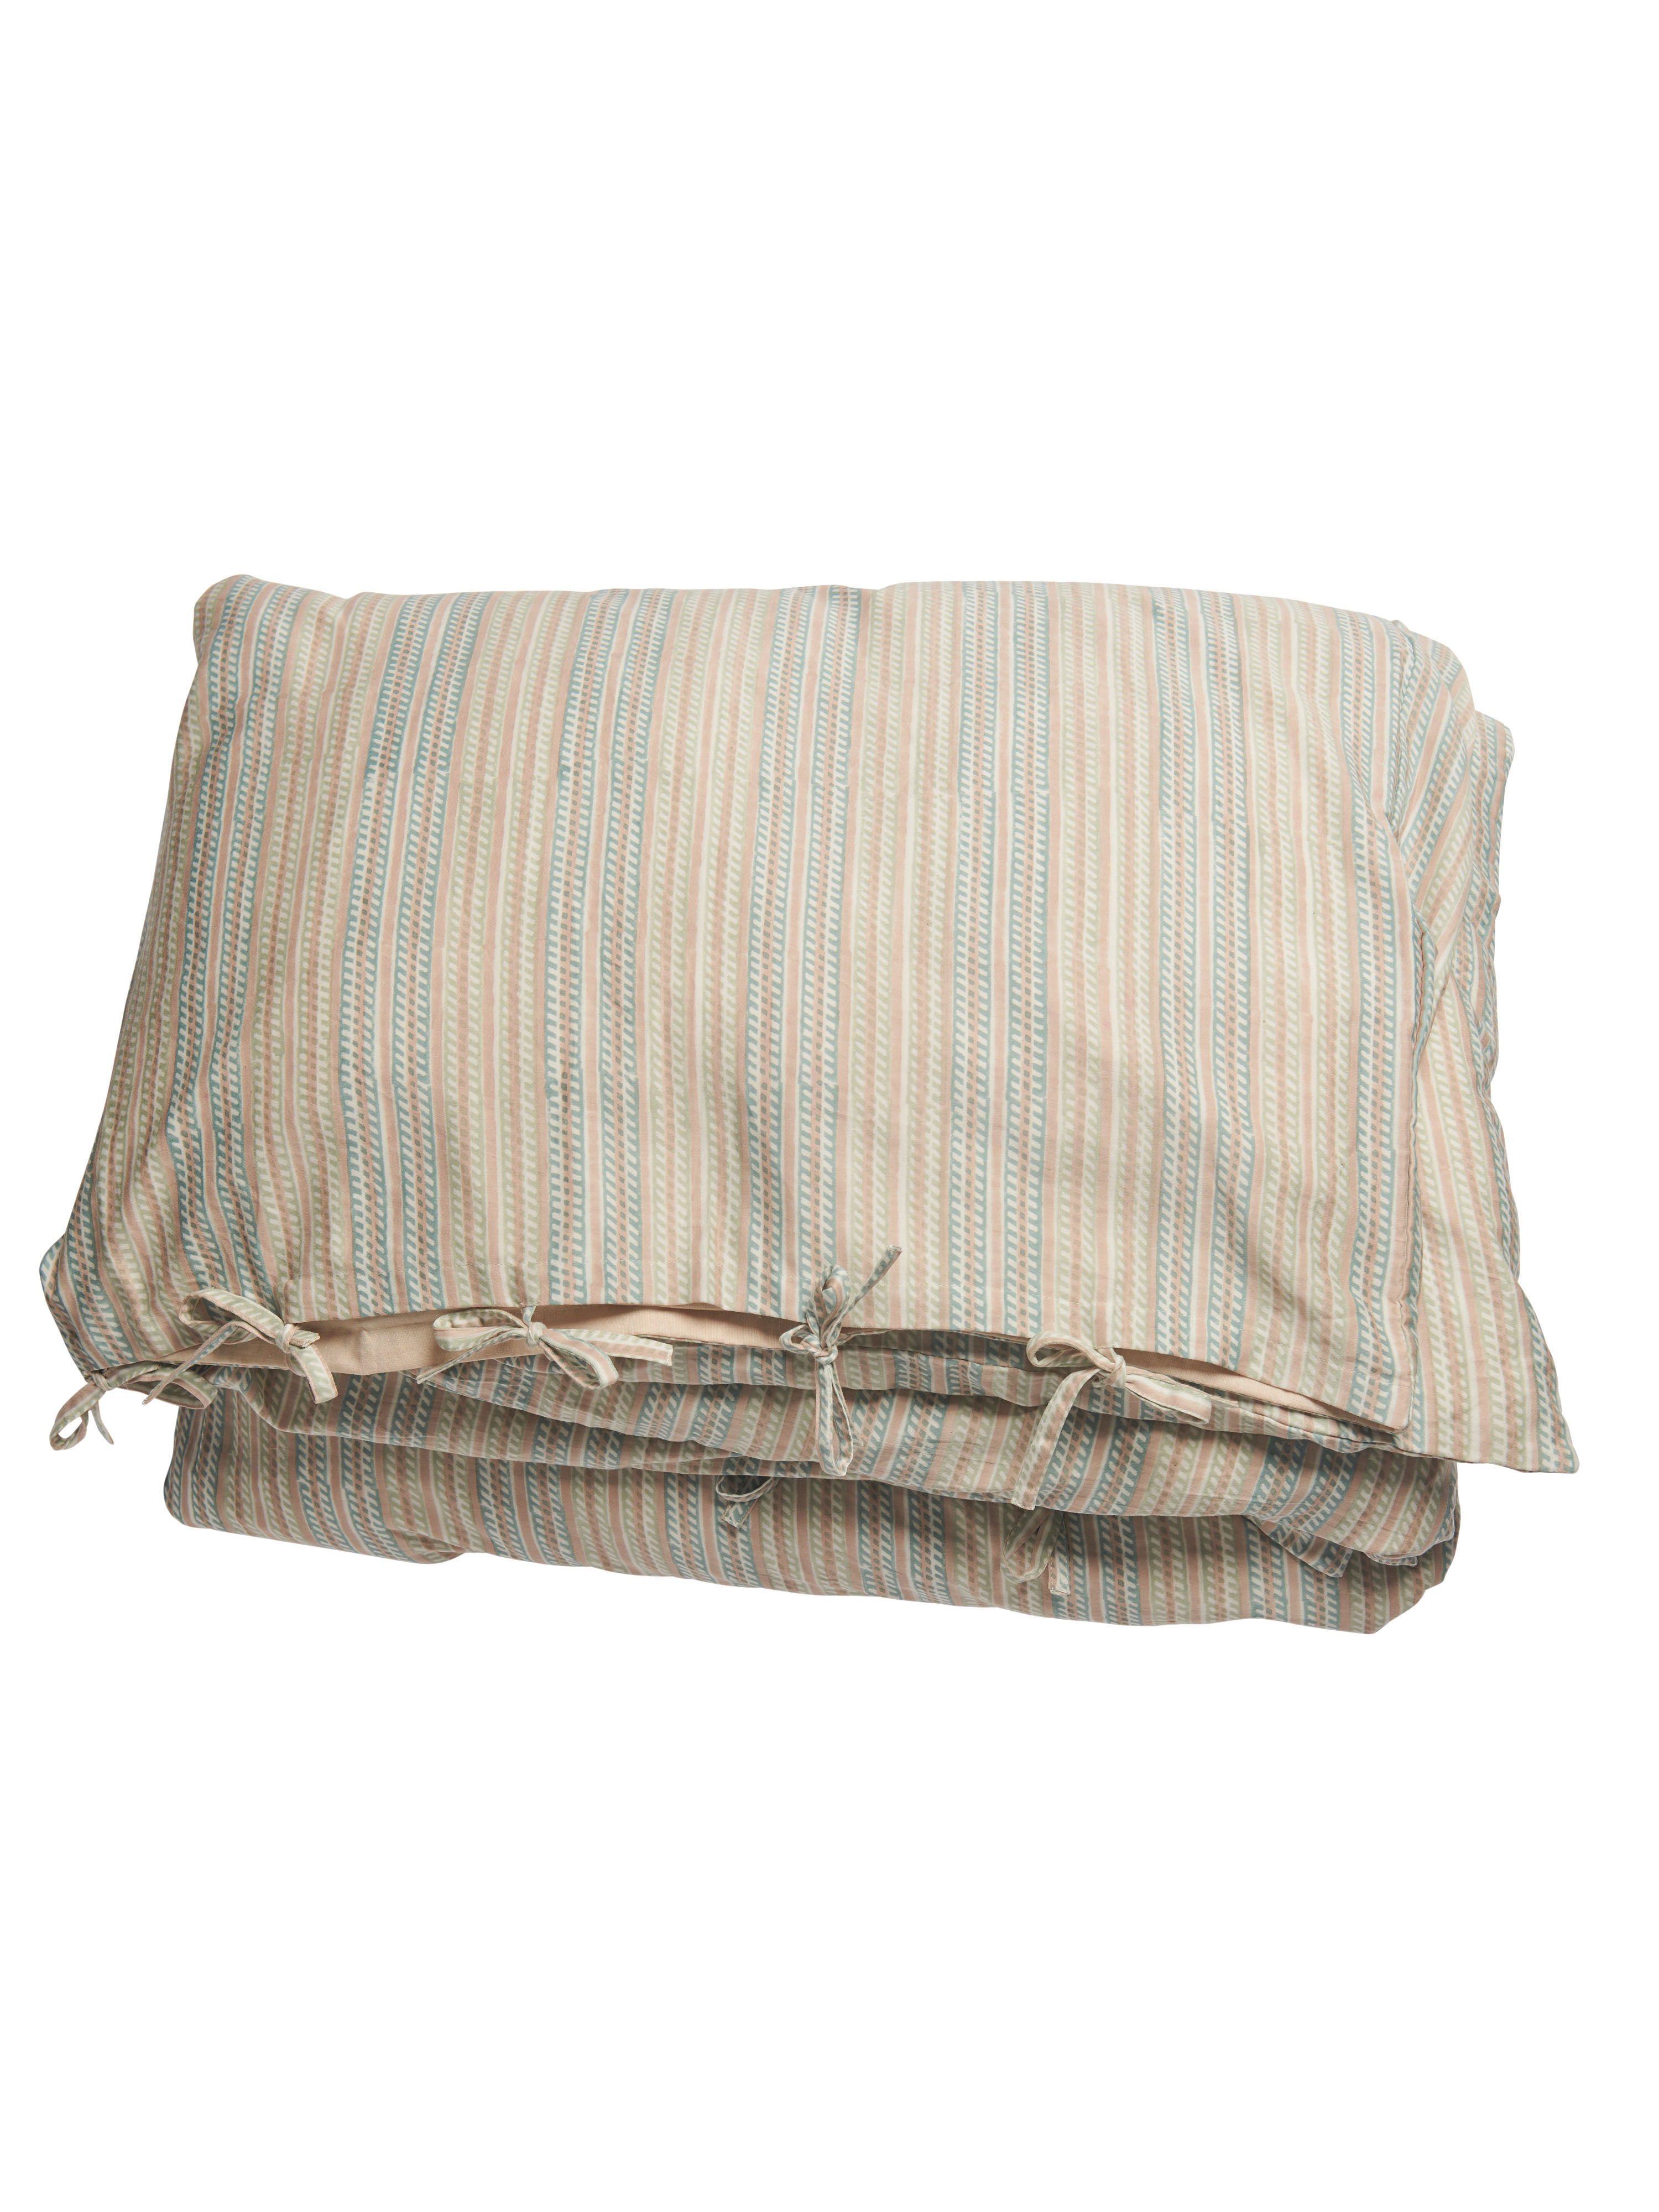 Bed set with Stripe print in Green & Beige